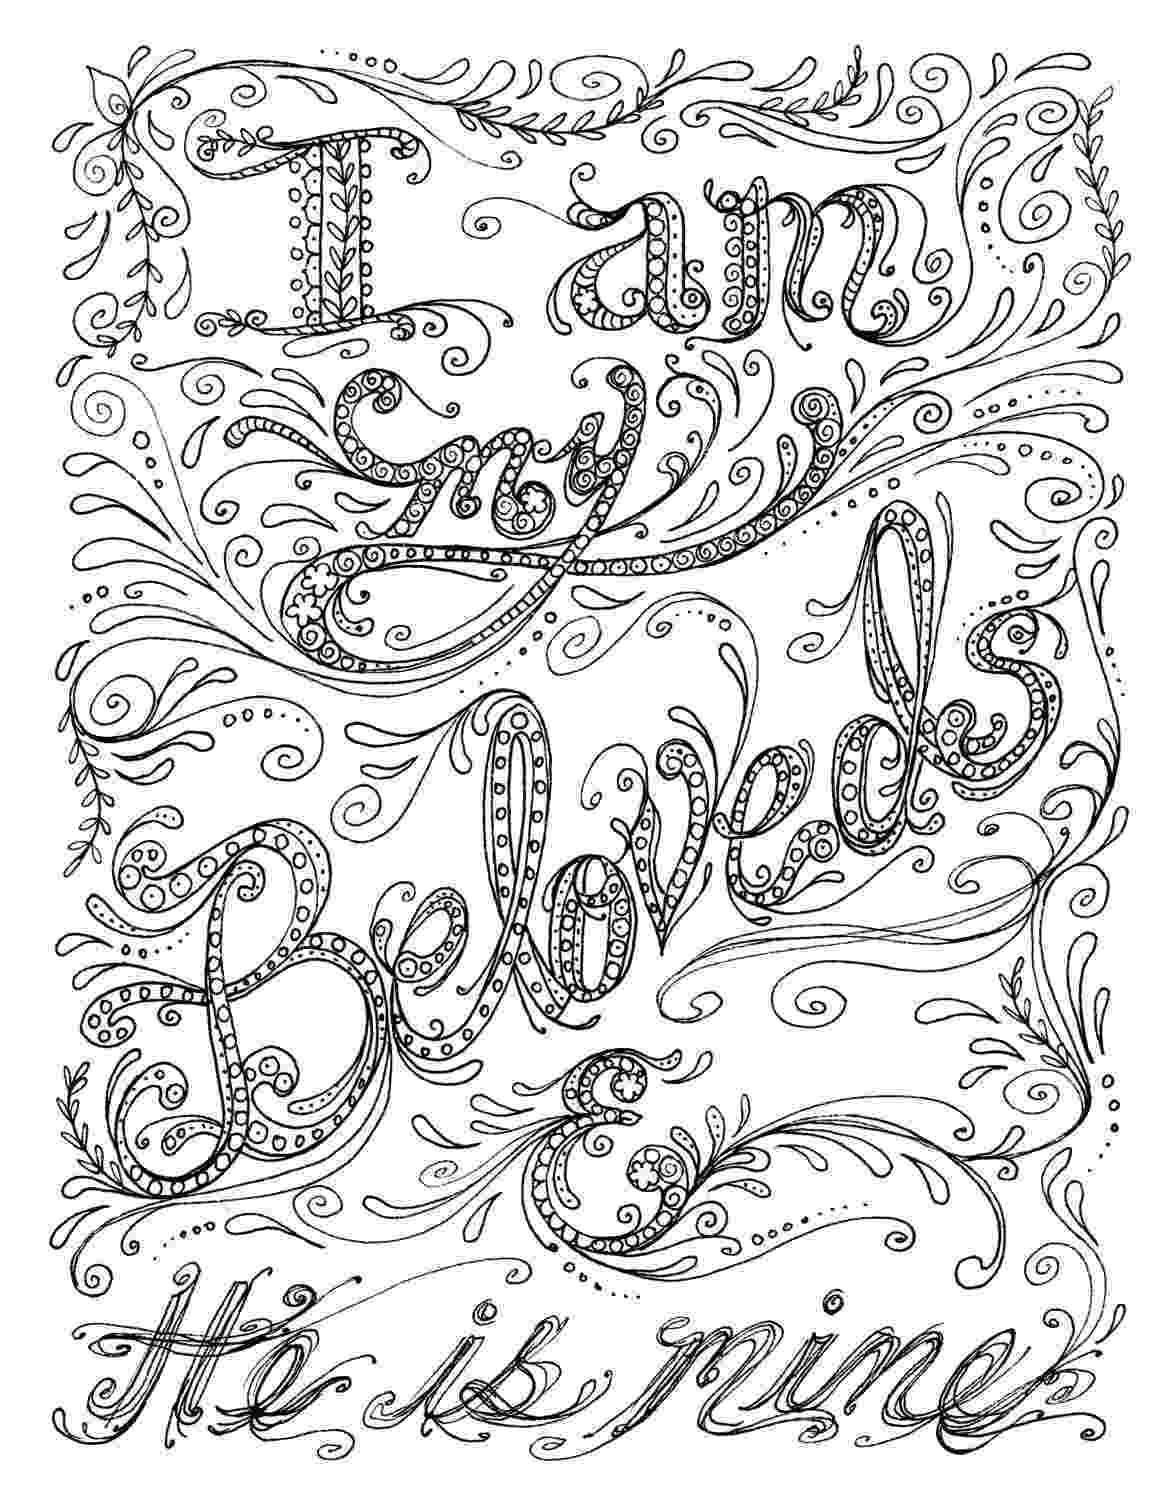 christian bible coloring pages free christian coloring pages for adults roundup bible christian pages coloring